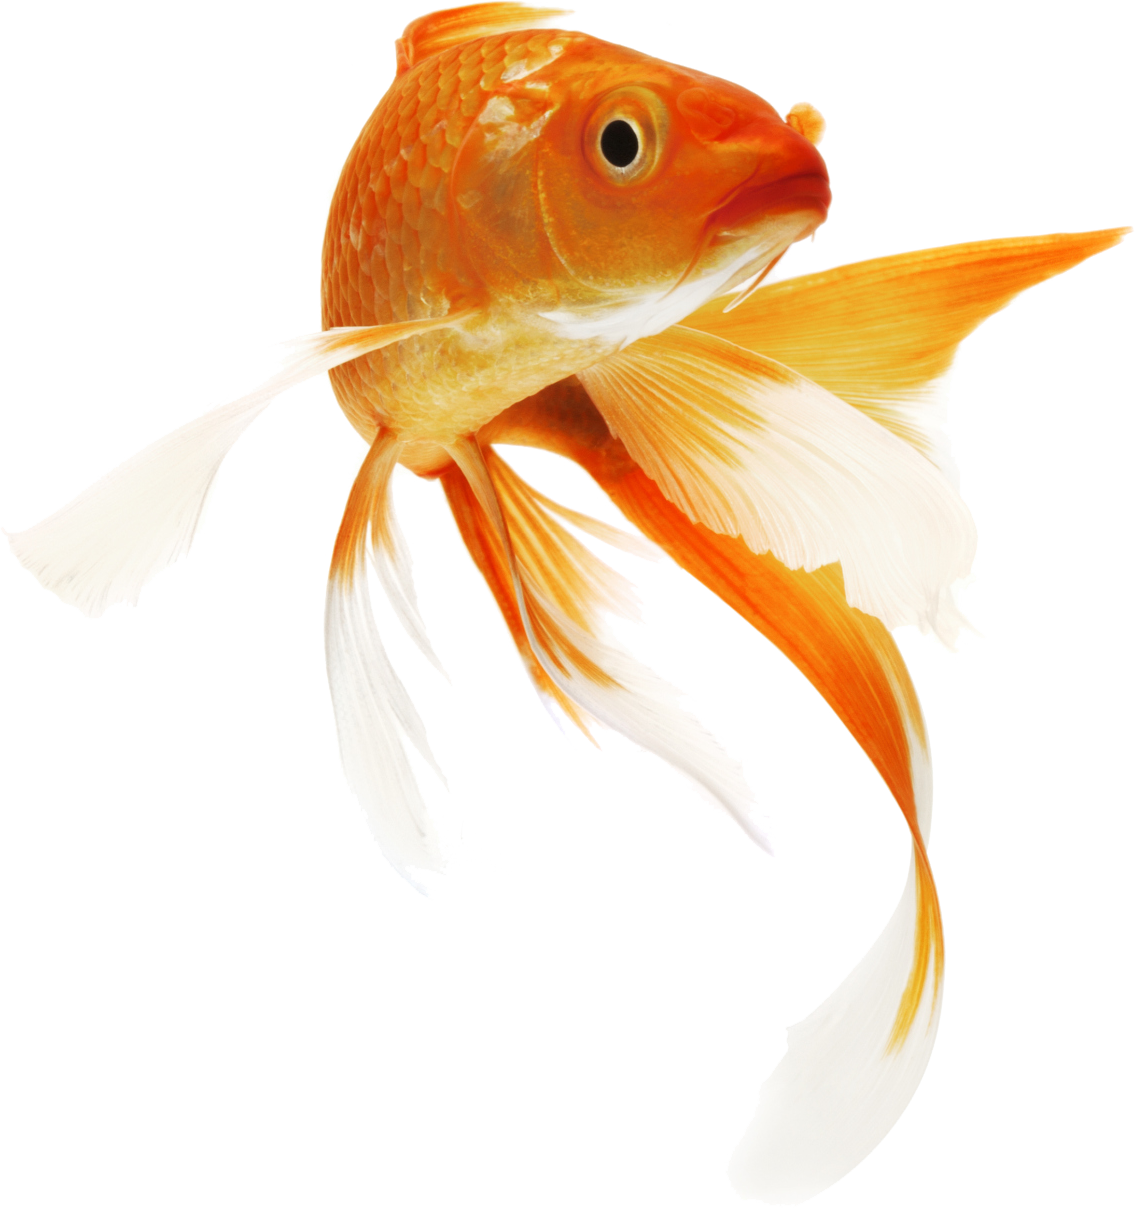 Fish in bowl png. Clipart icon transparentpng